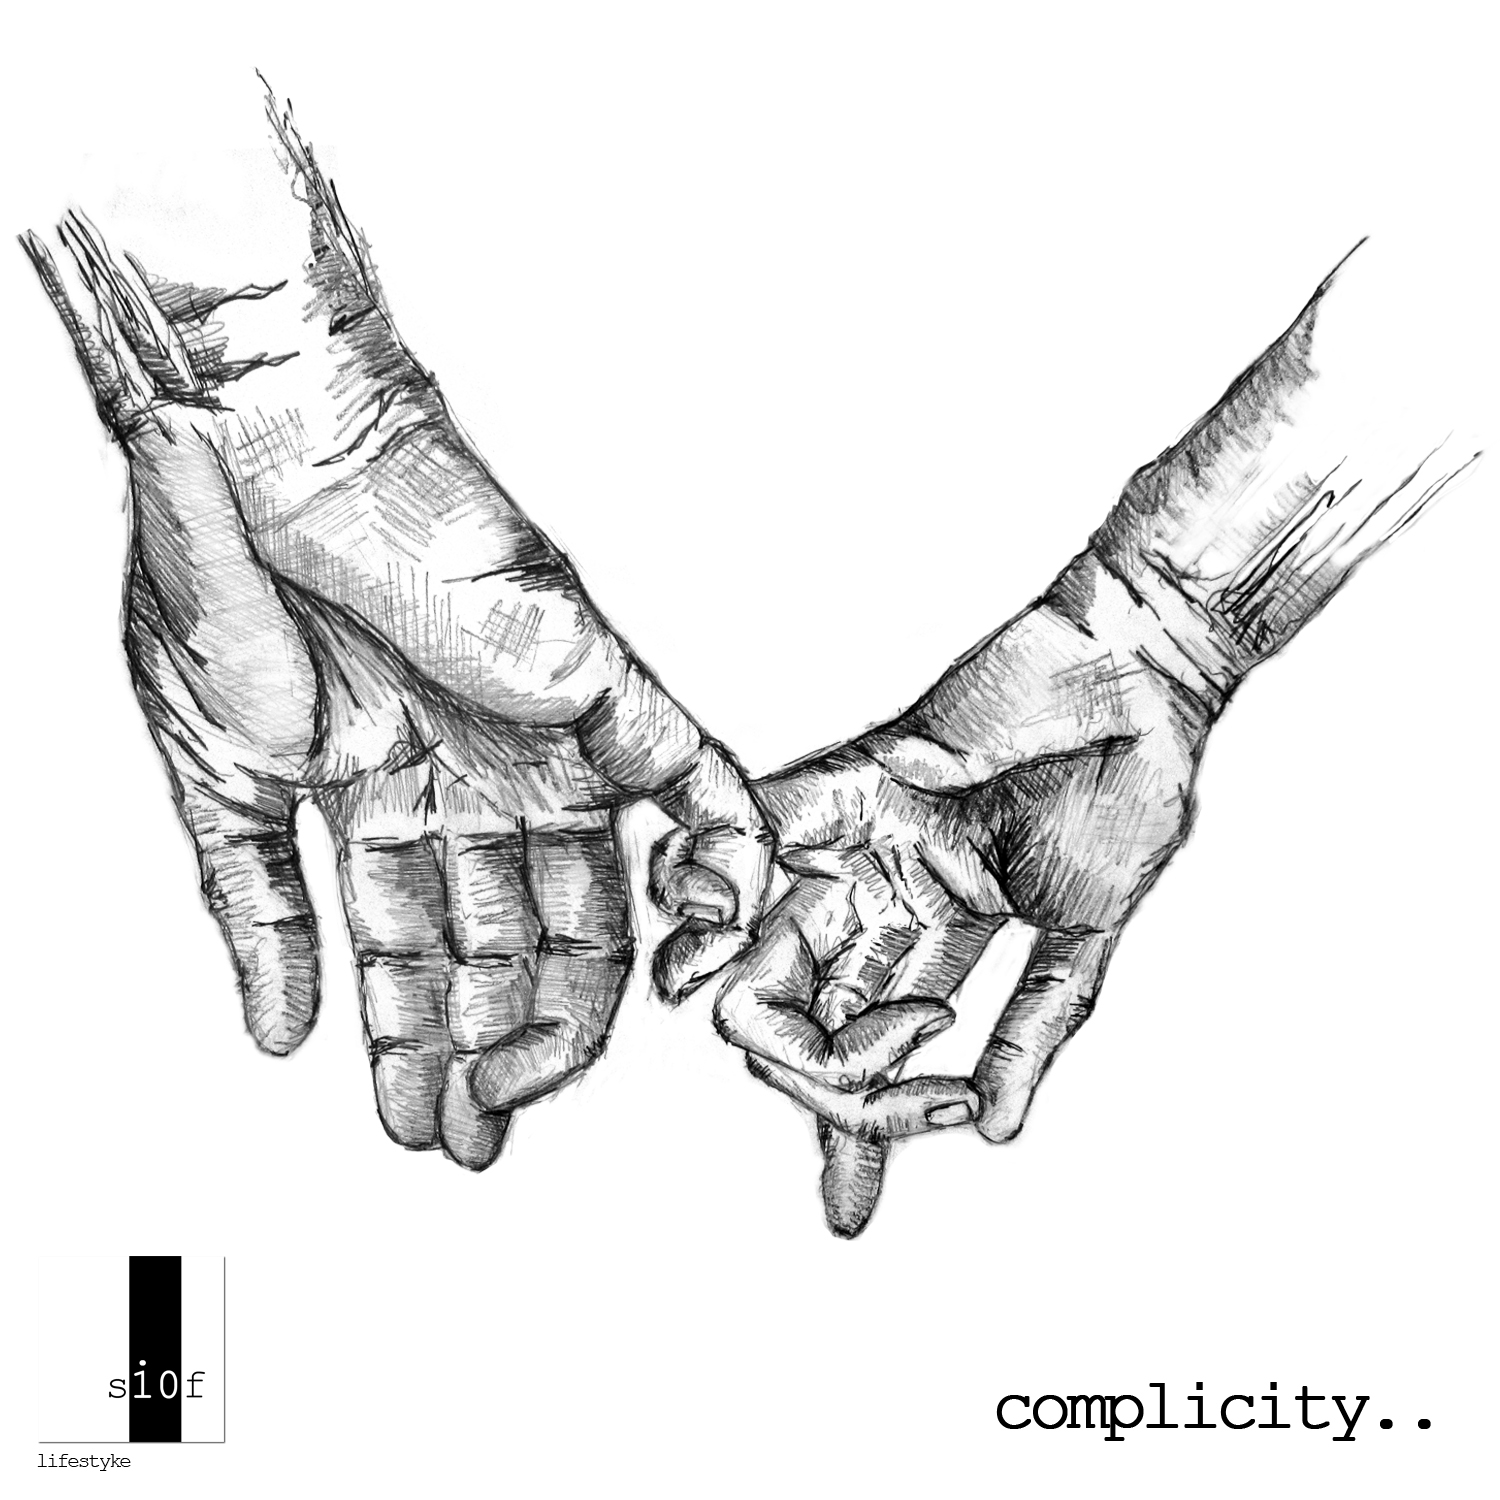 complicity...